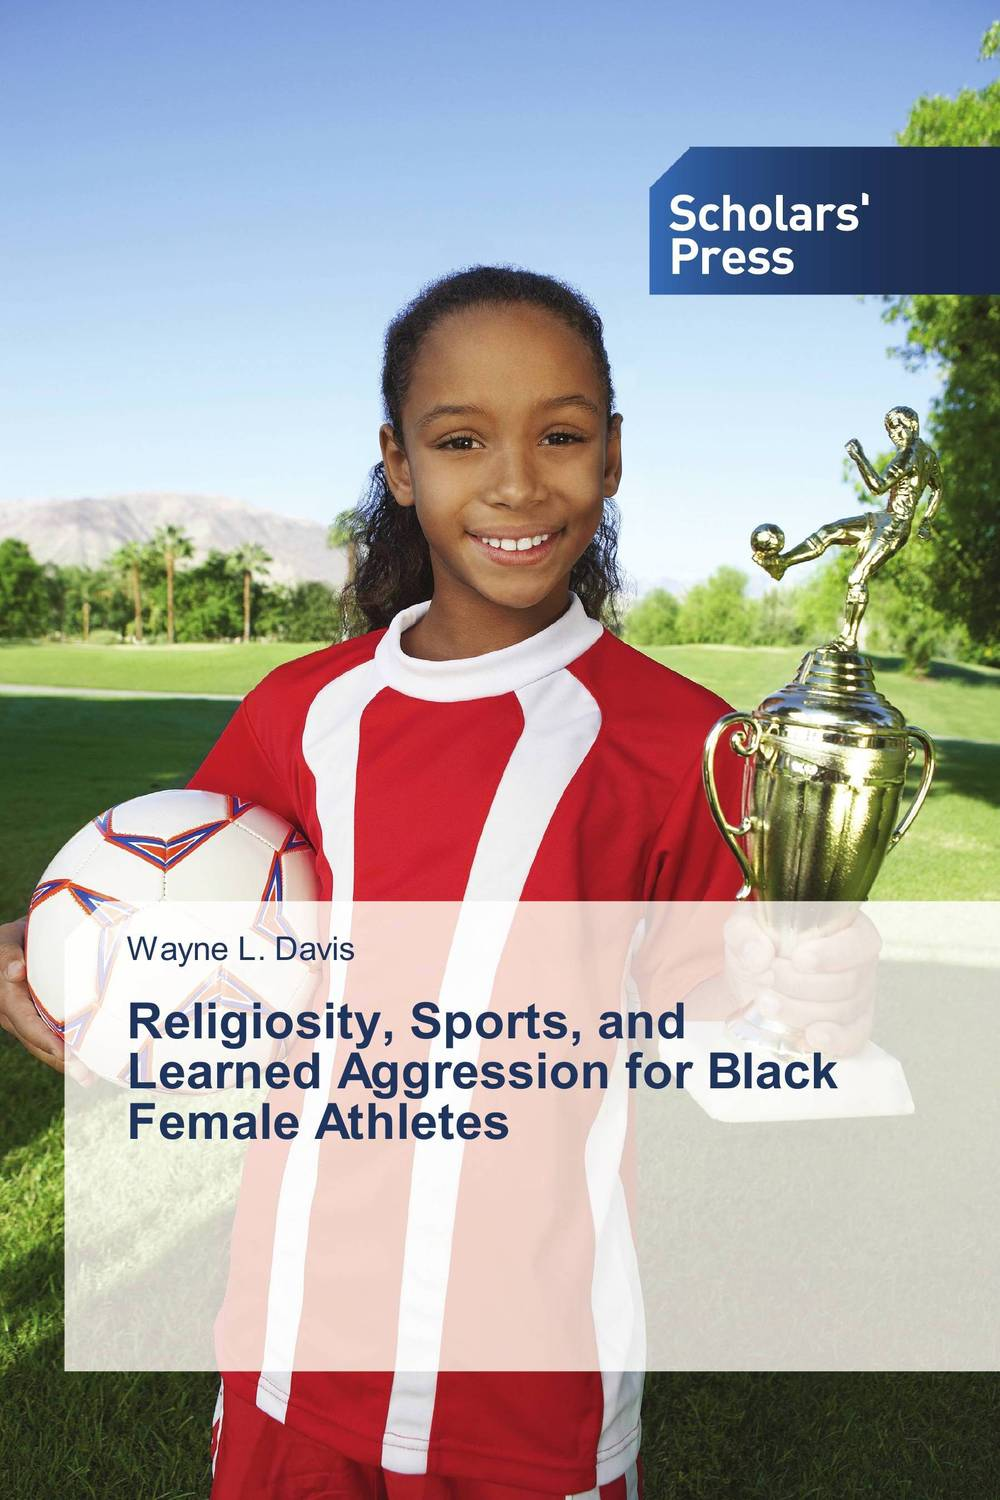 Religiosity, Sports, and Learned Aggression for Black Female Athletes